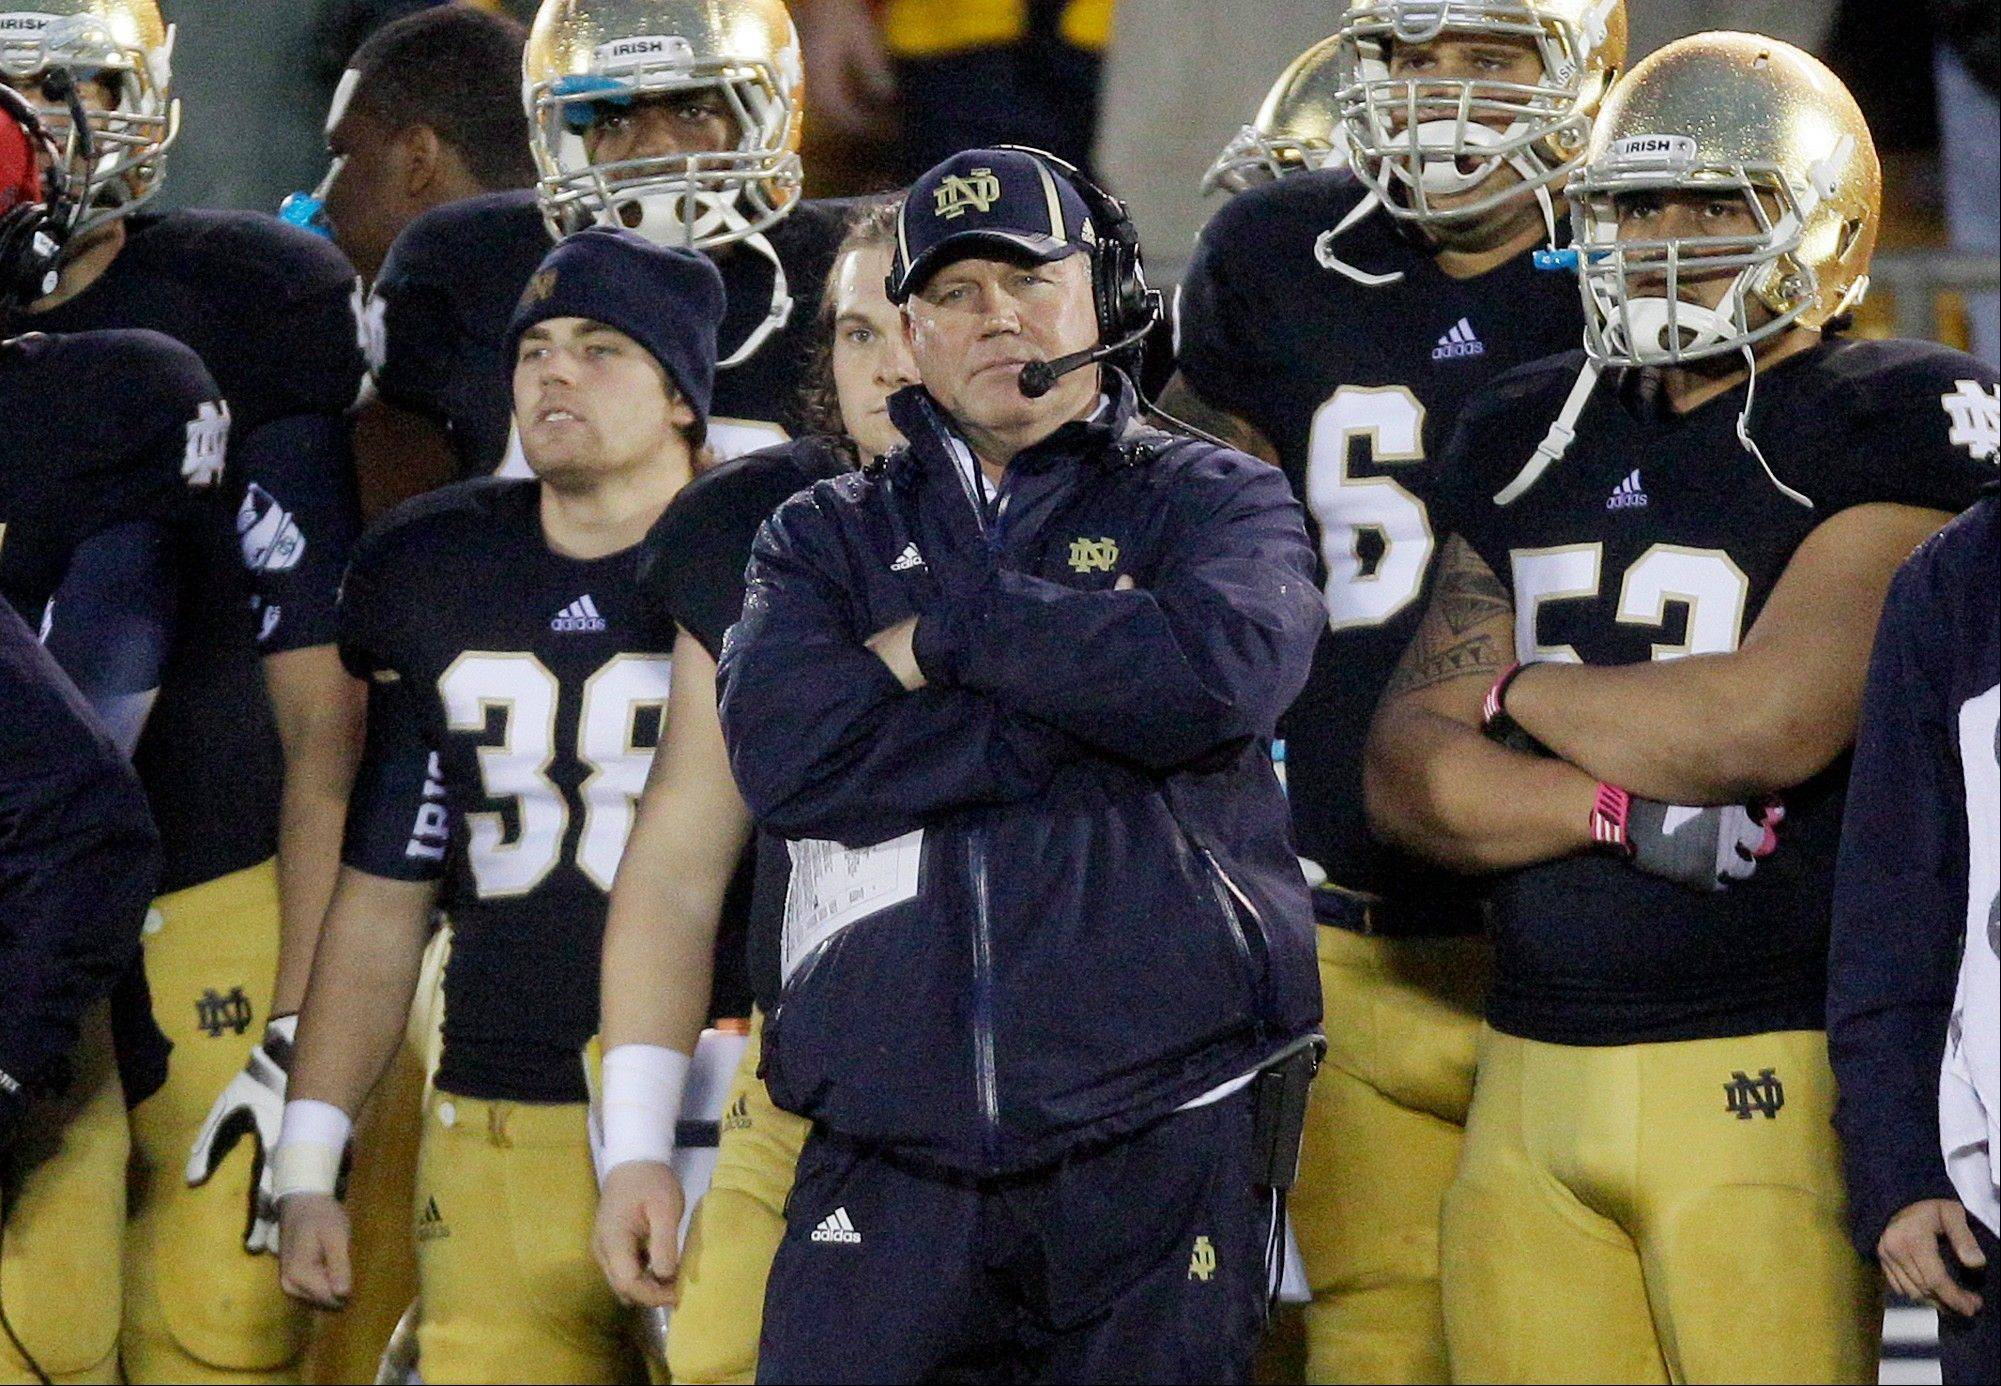 Notre Dame head coach Brian Kelly watches from the sideline during overtime of an NCAA college football game against Stanford in South Bend. Kelly says he doesn�t believe third-ranked Notre Dame�s season will be lessened if the Fighting Irish finish the season undefeated and don�t win a national championship.